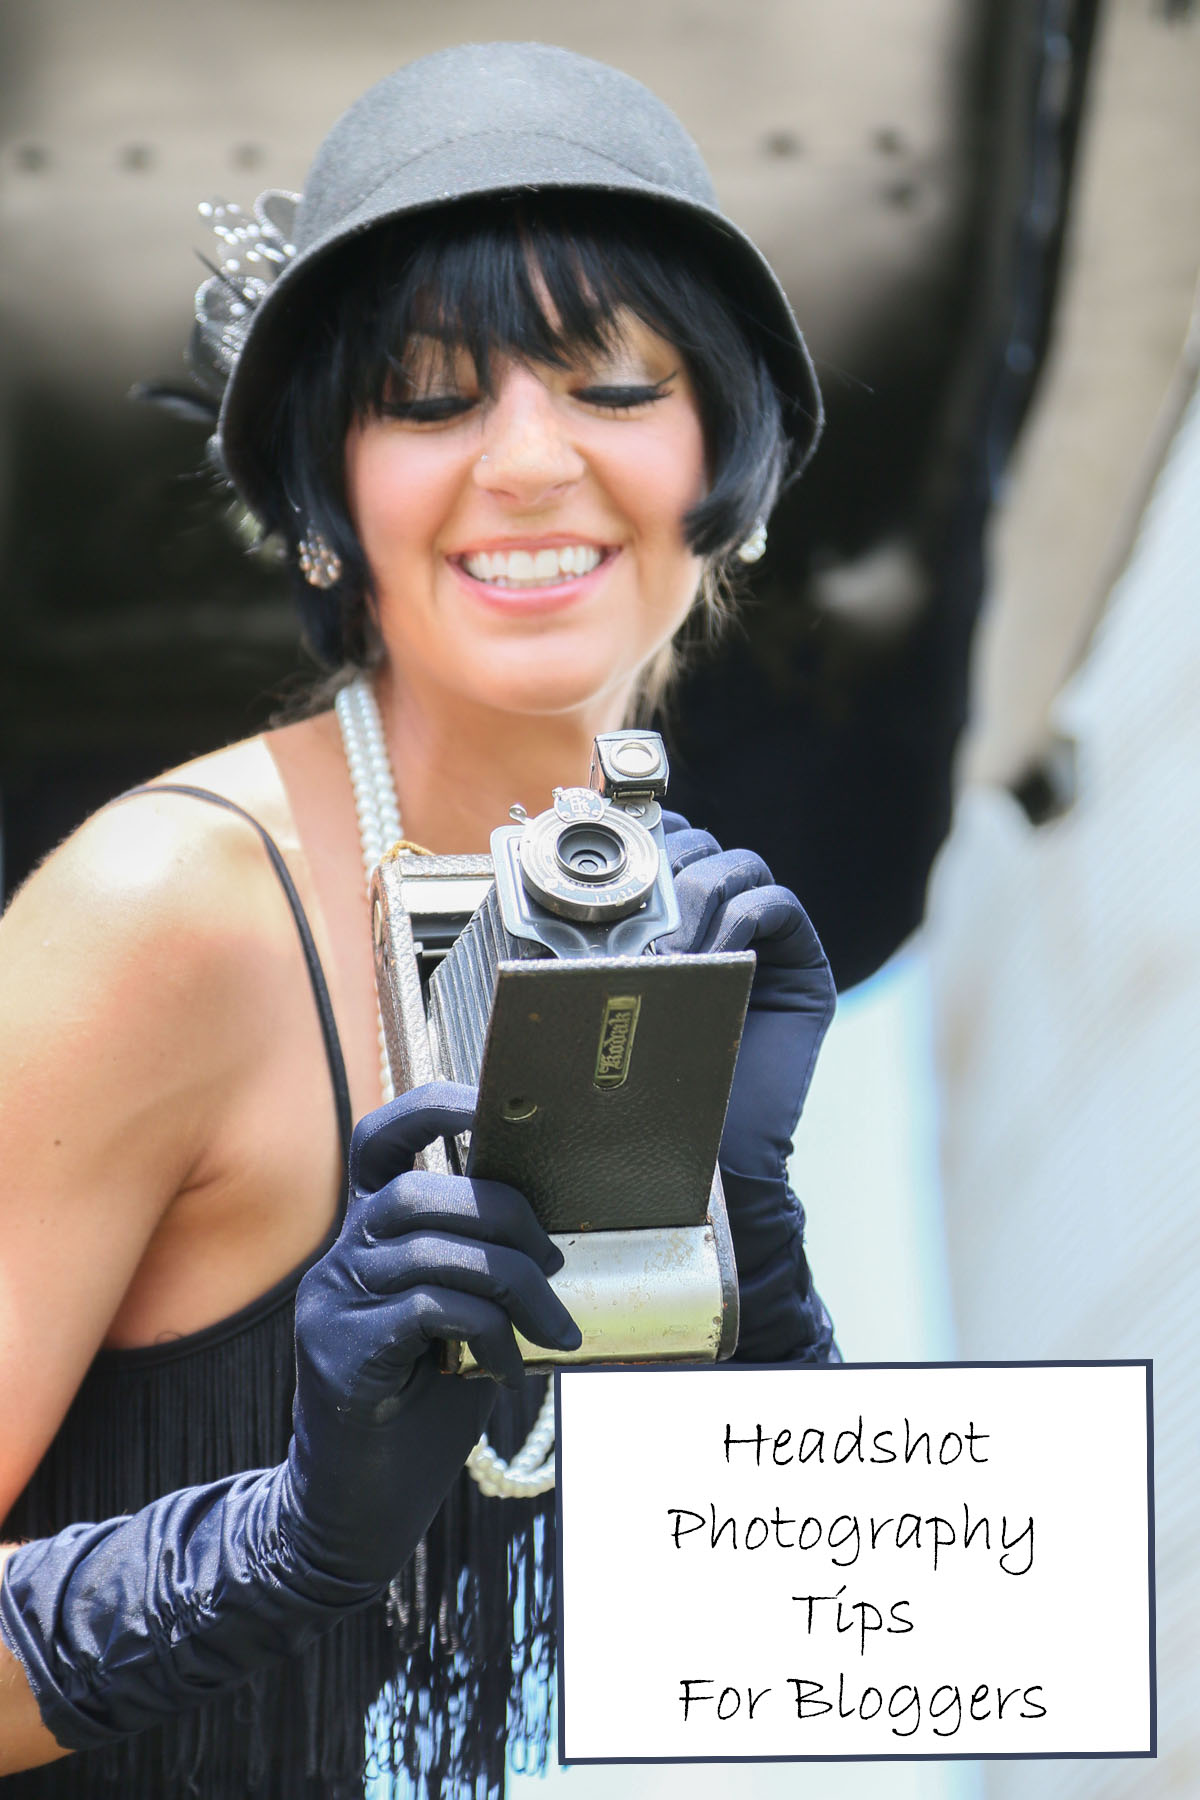 Headshot Photography Tips For Bloggers